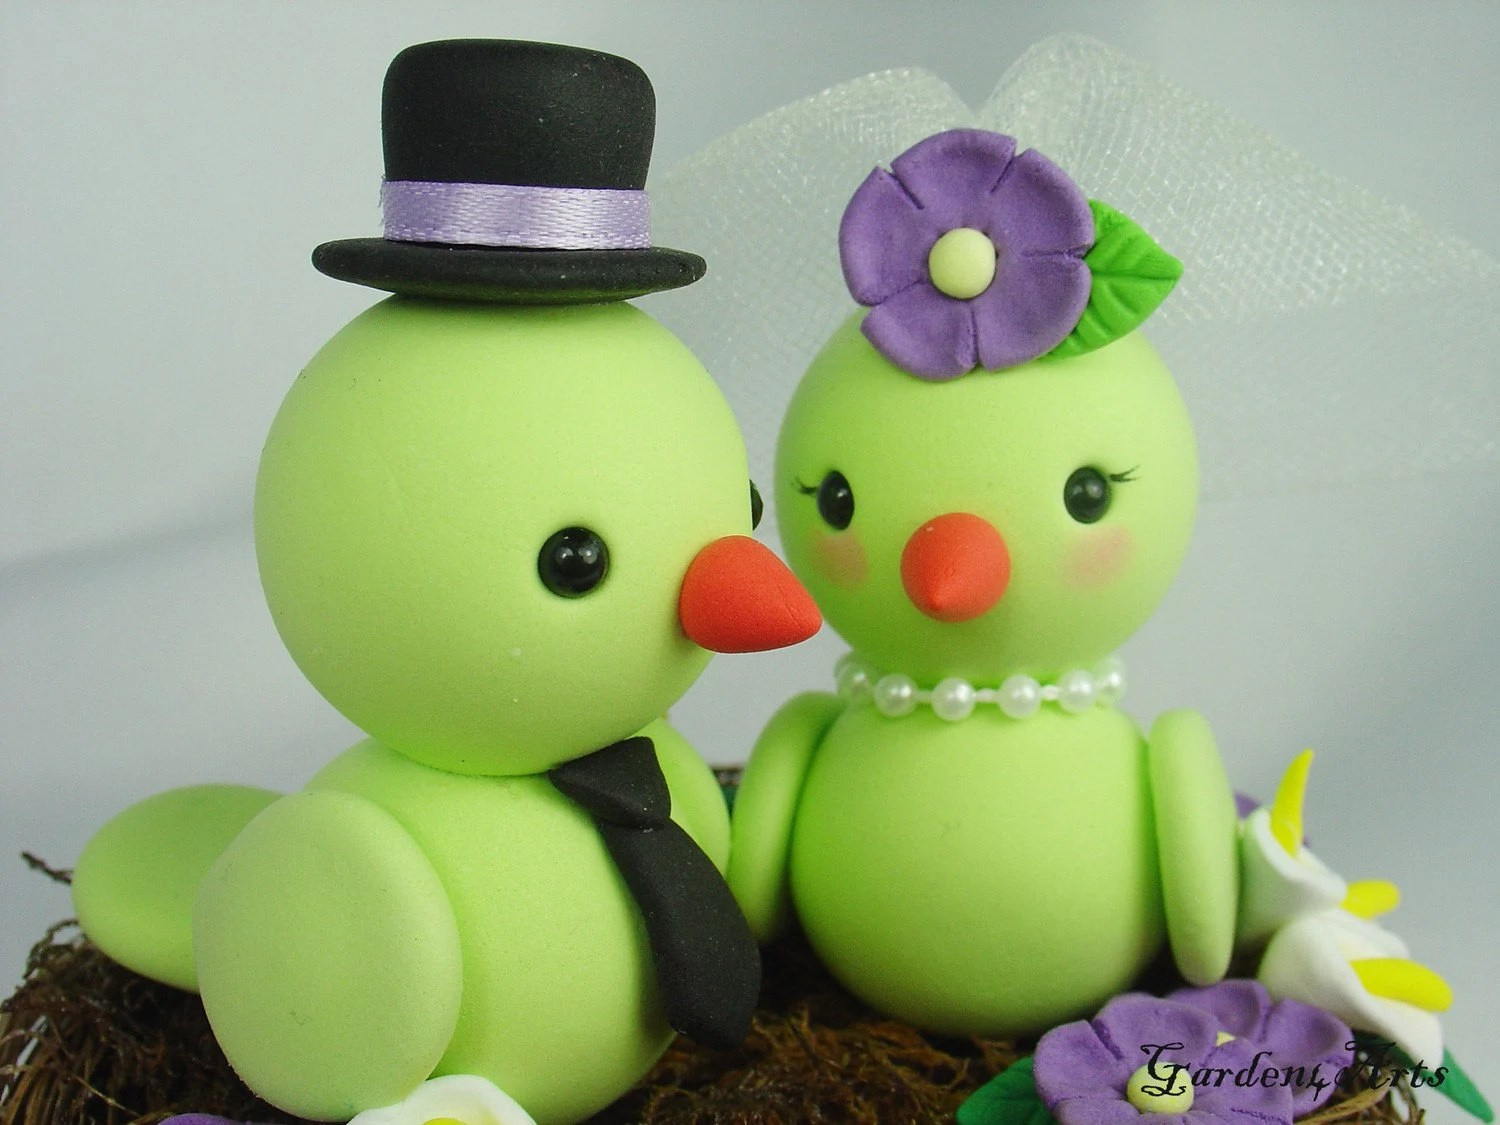 Customise Birds Love Wedding Cake Topper with Floral Nest Choice of color - Garden4Arts